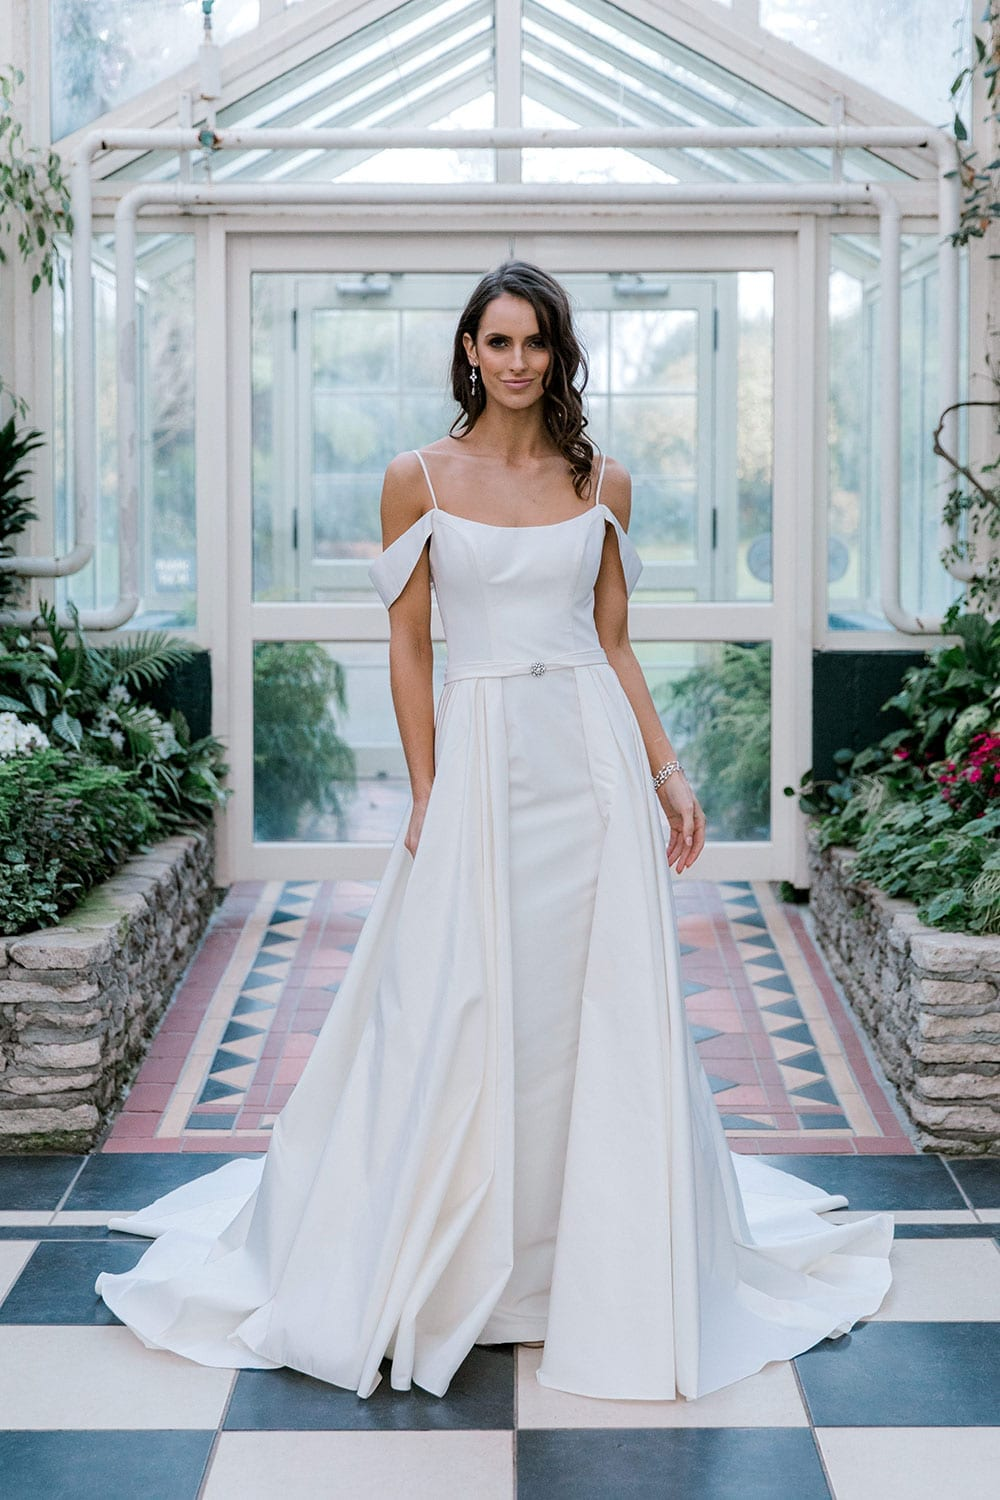 Model wearing Vinka Design Chiara Wedding Dress, a Modern Silk Wedding Gown with Train in a botanical garden greenhouse portrait